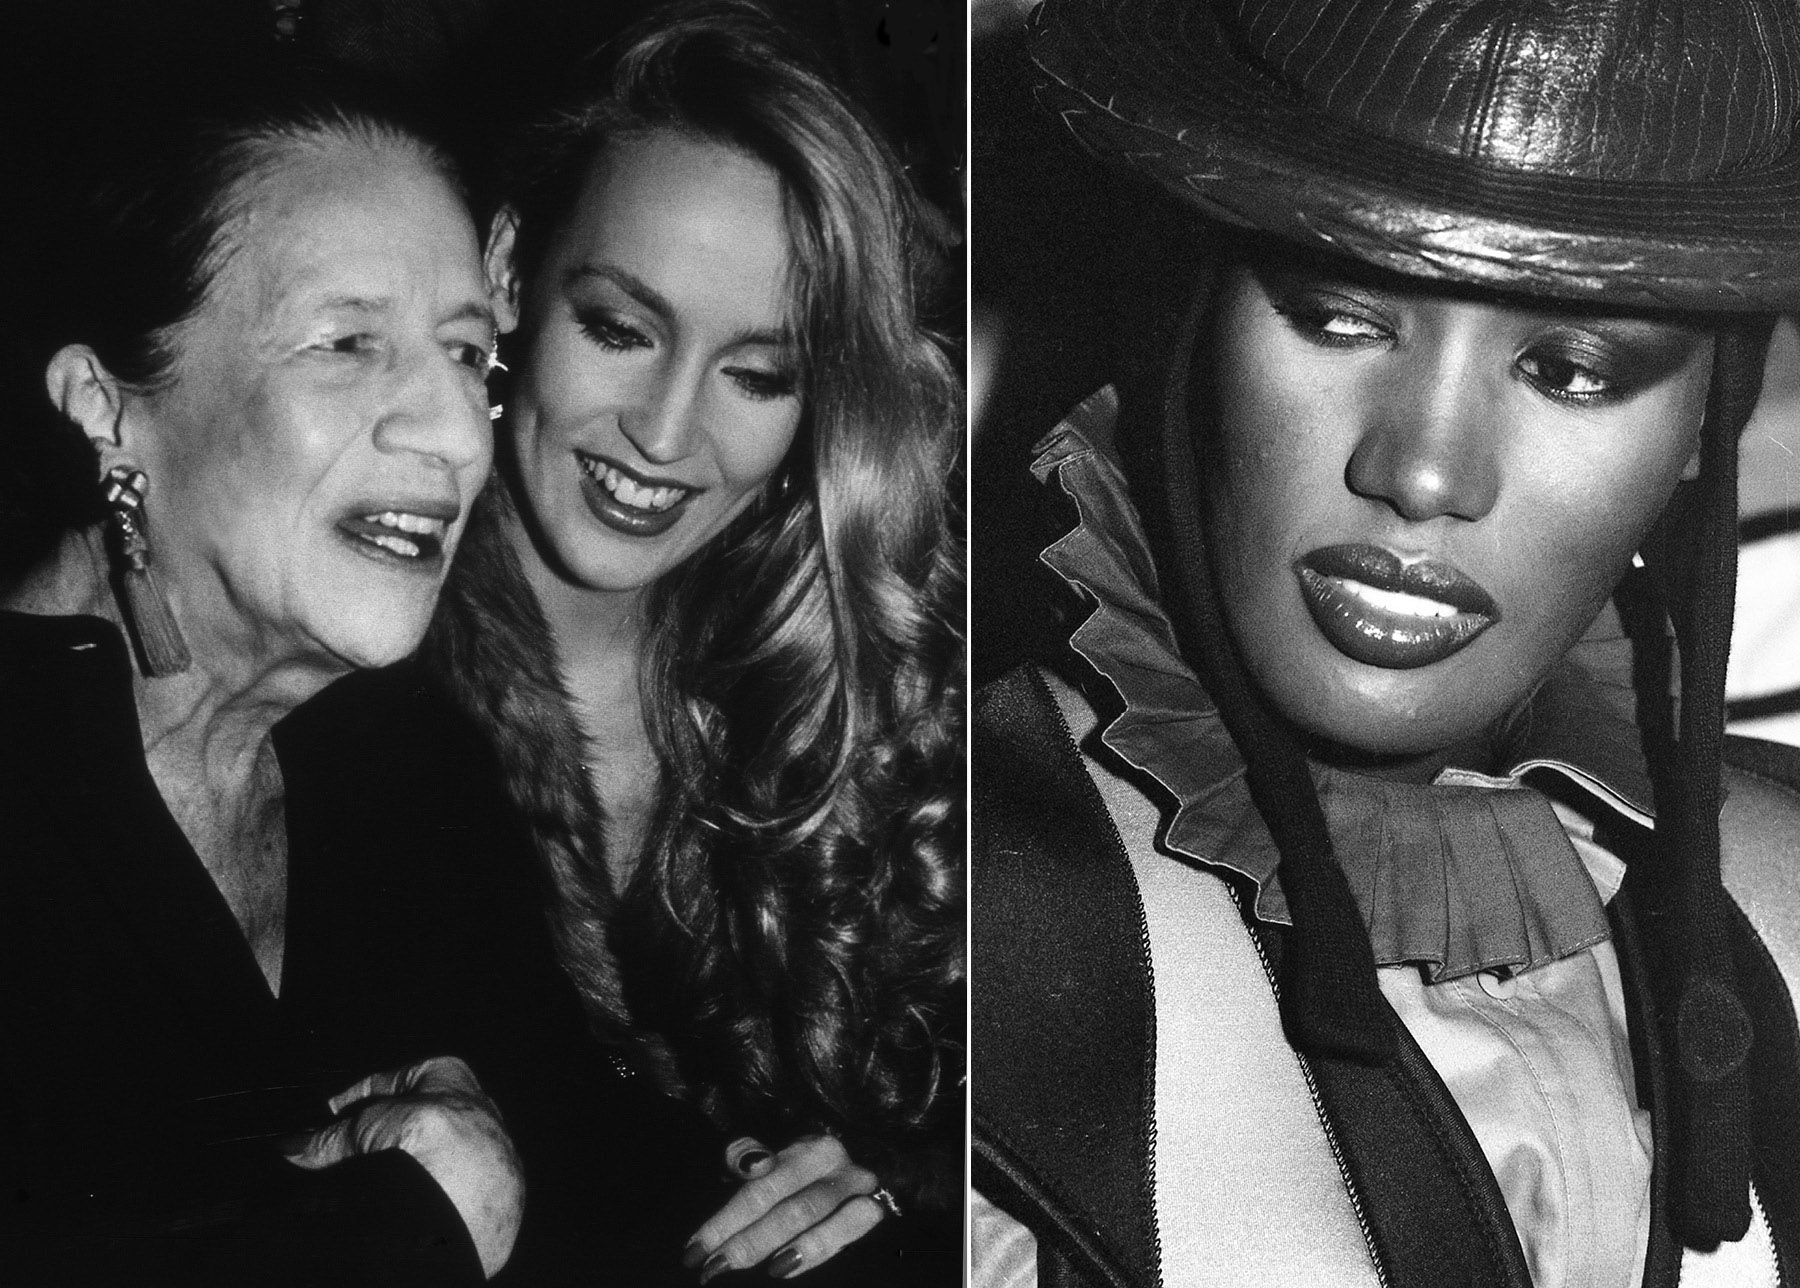 Spirit-&-Flesh-Magazine_LA-VIE-EN-ROSE_Diana-Vreeland-&-Jerry-Hall_Grace-Jonesby_Rose-Hartman_9